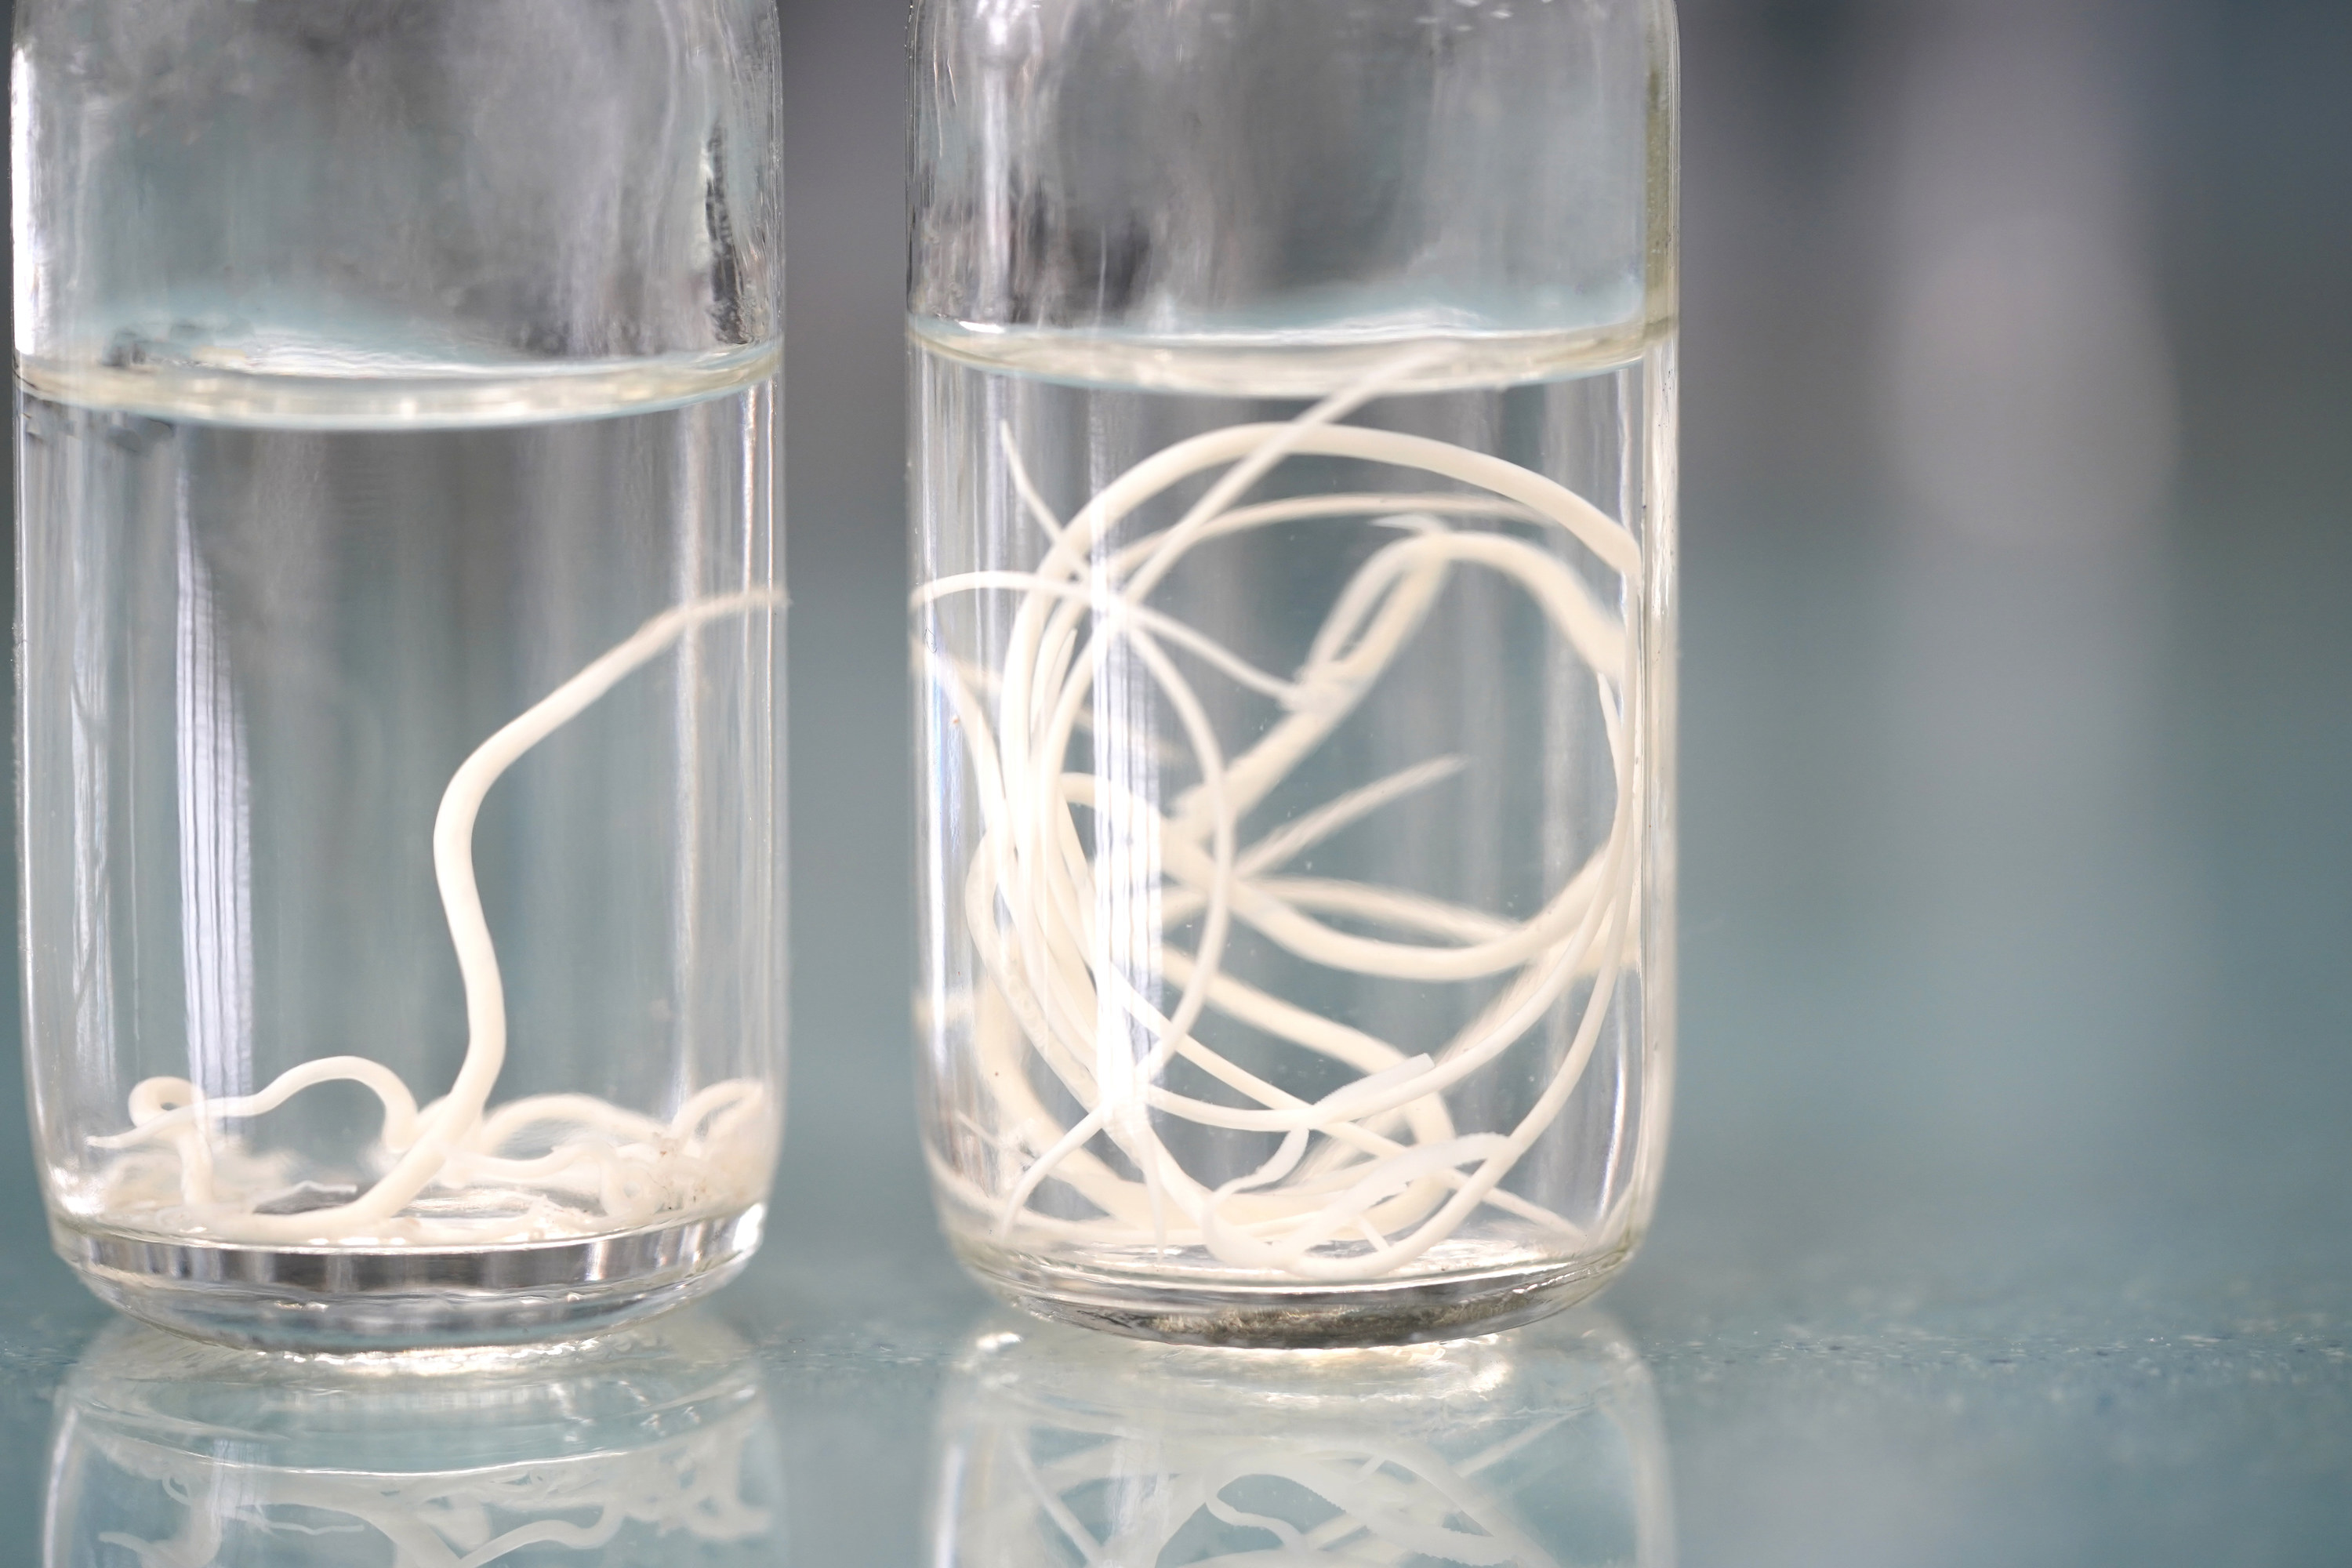 Photo of two jars filled with liquid and long tapeworms